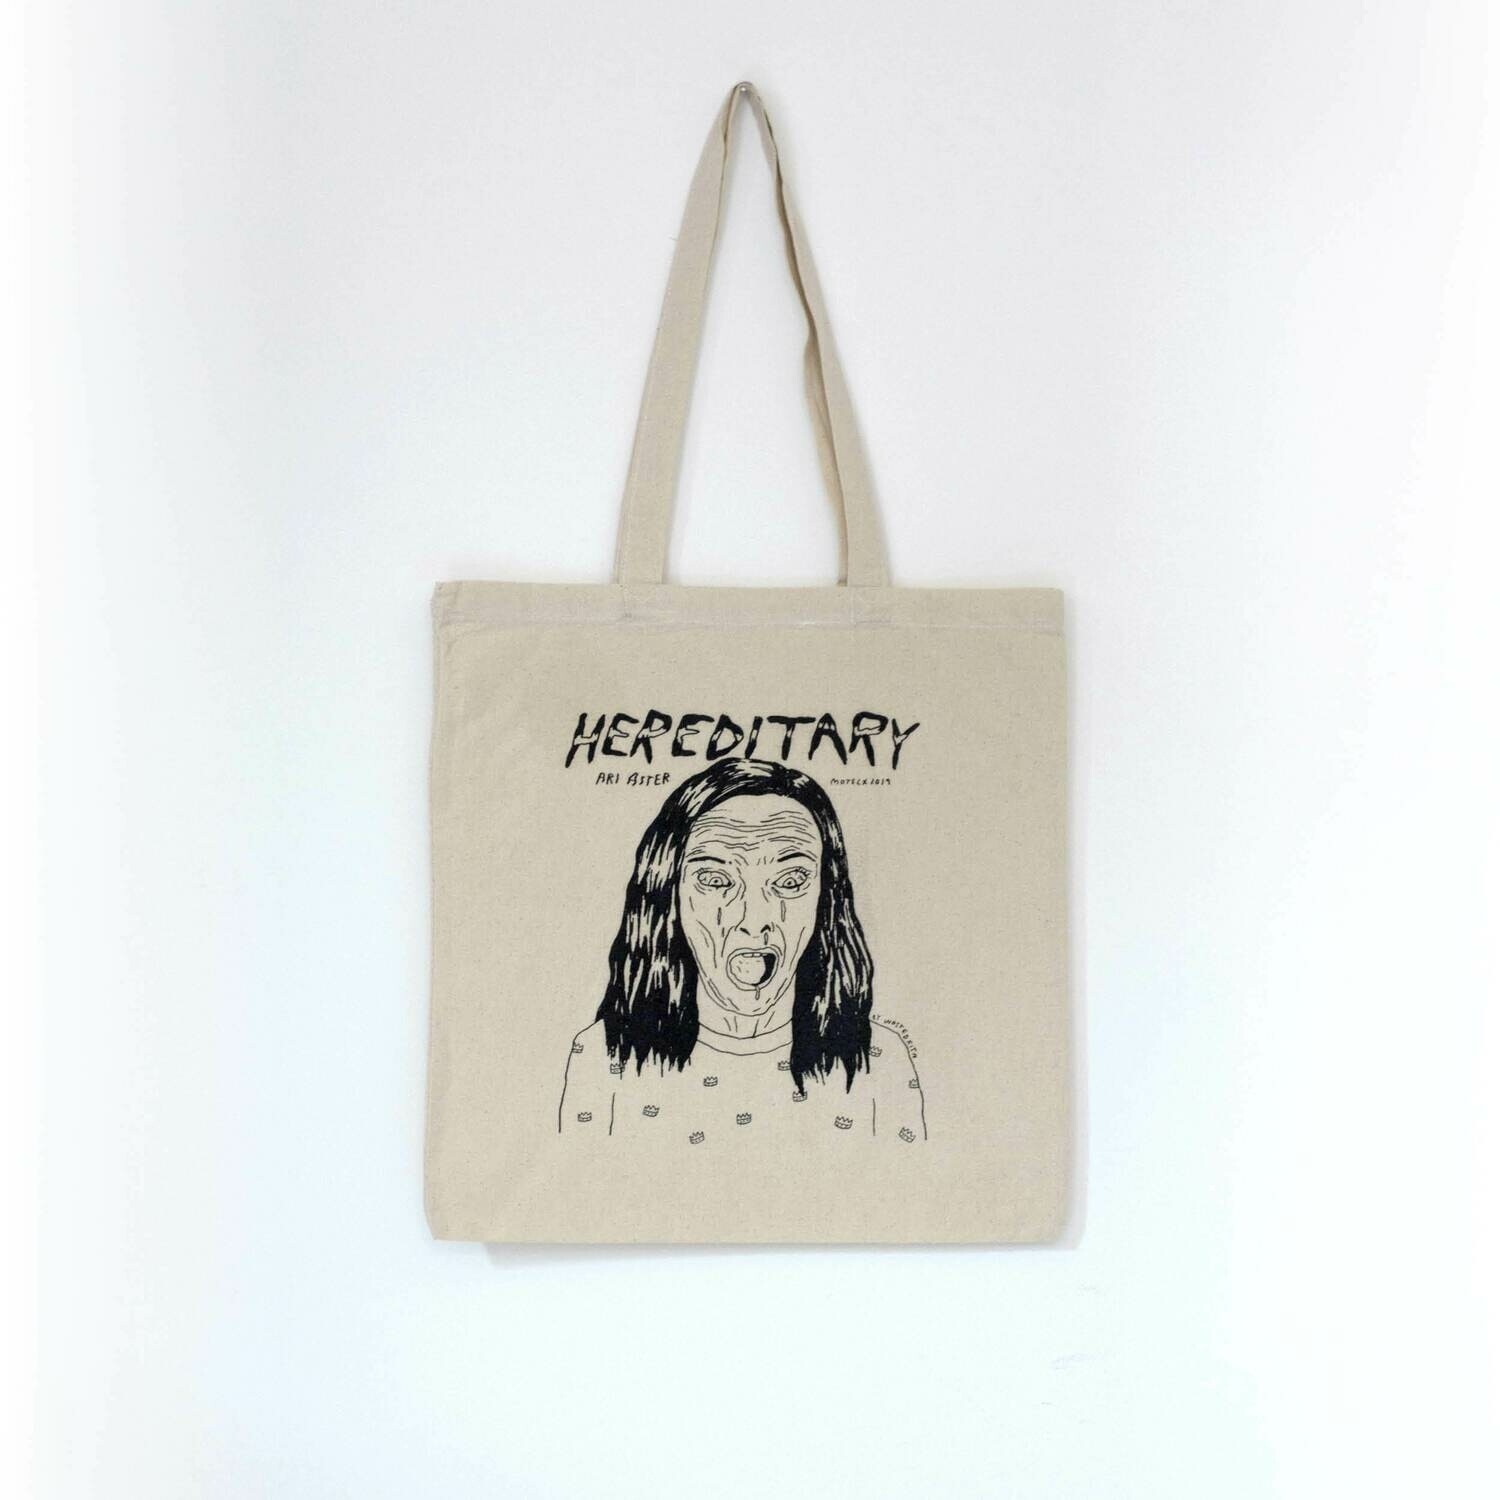 MOTELX 2019 Special Edition Tote Bag / Hereditary by Wasted Rita